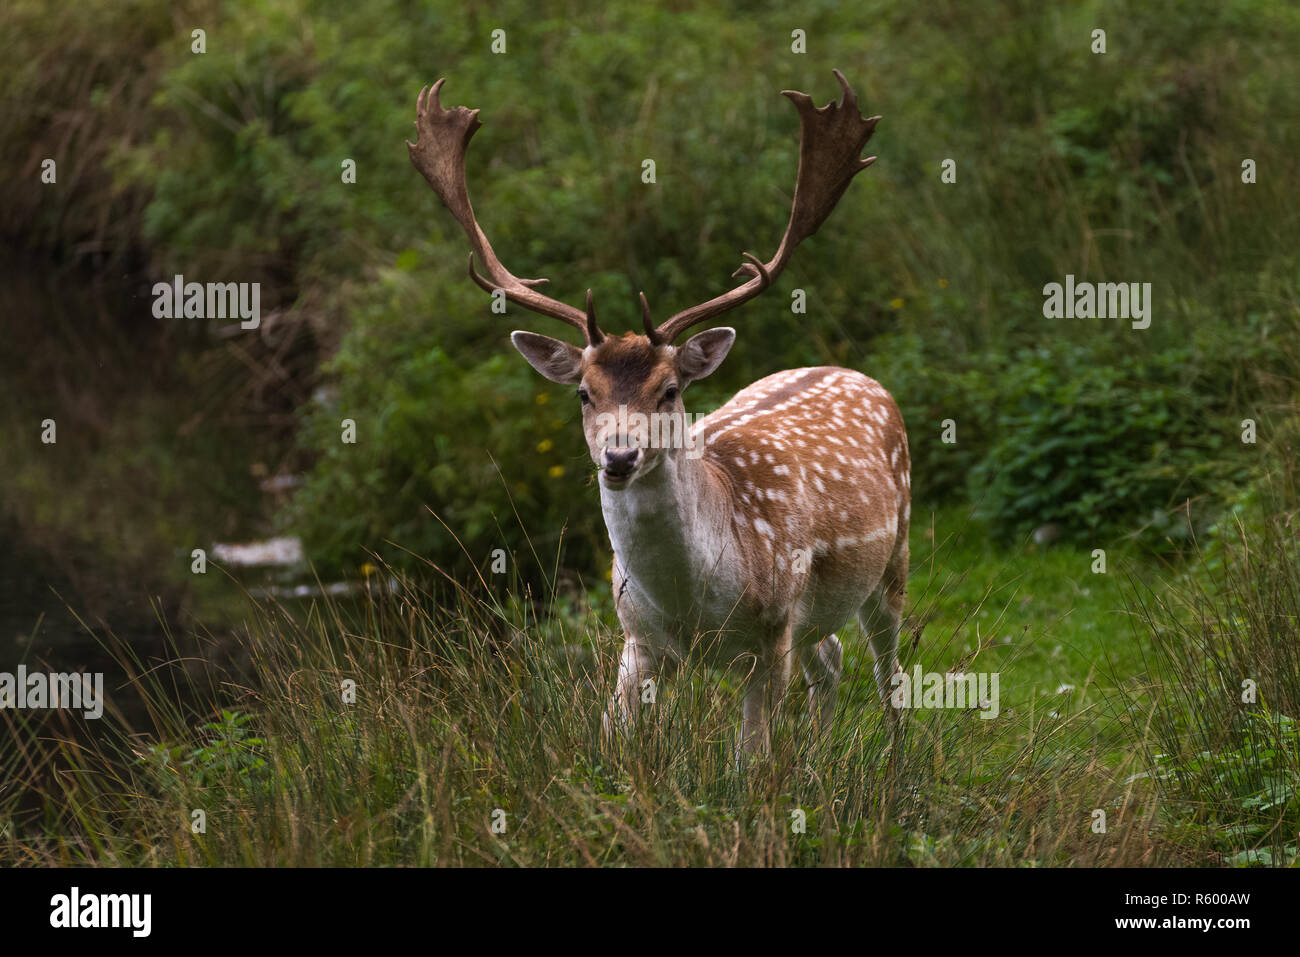 picture of deer - Stock Image